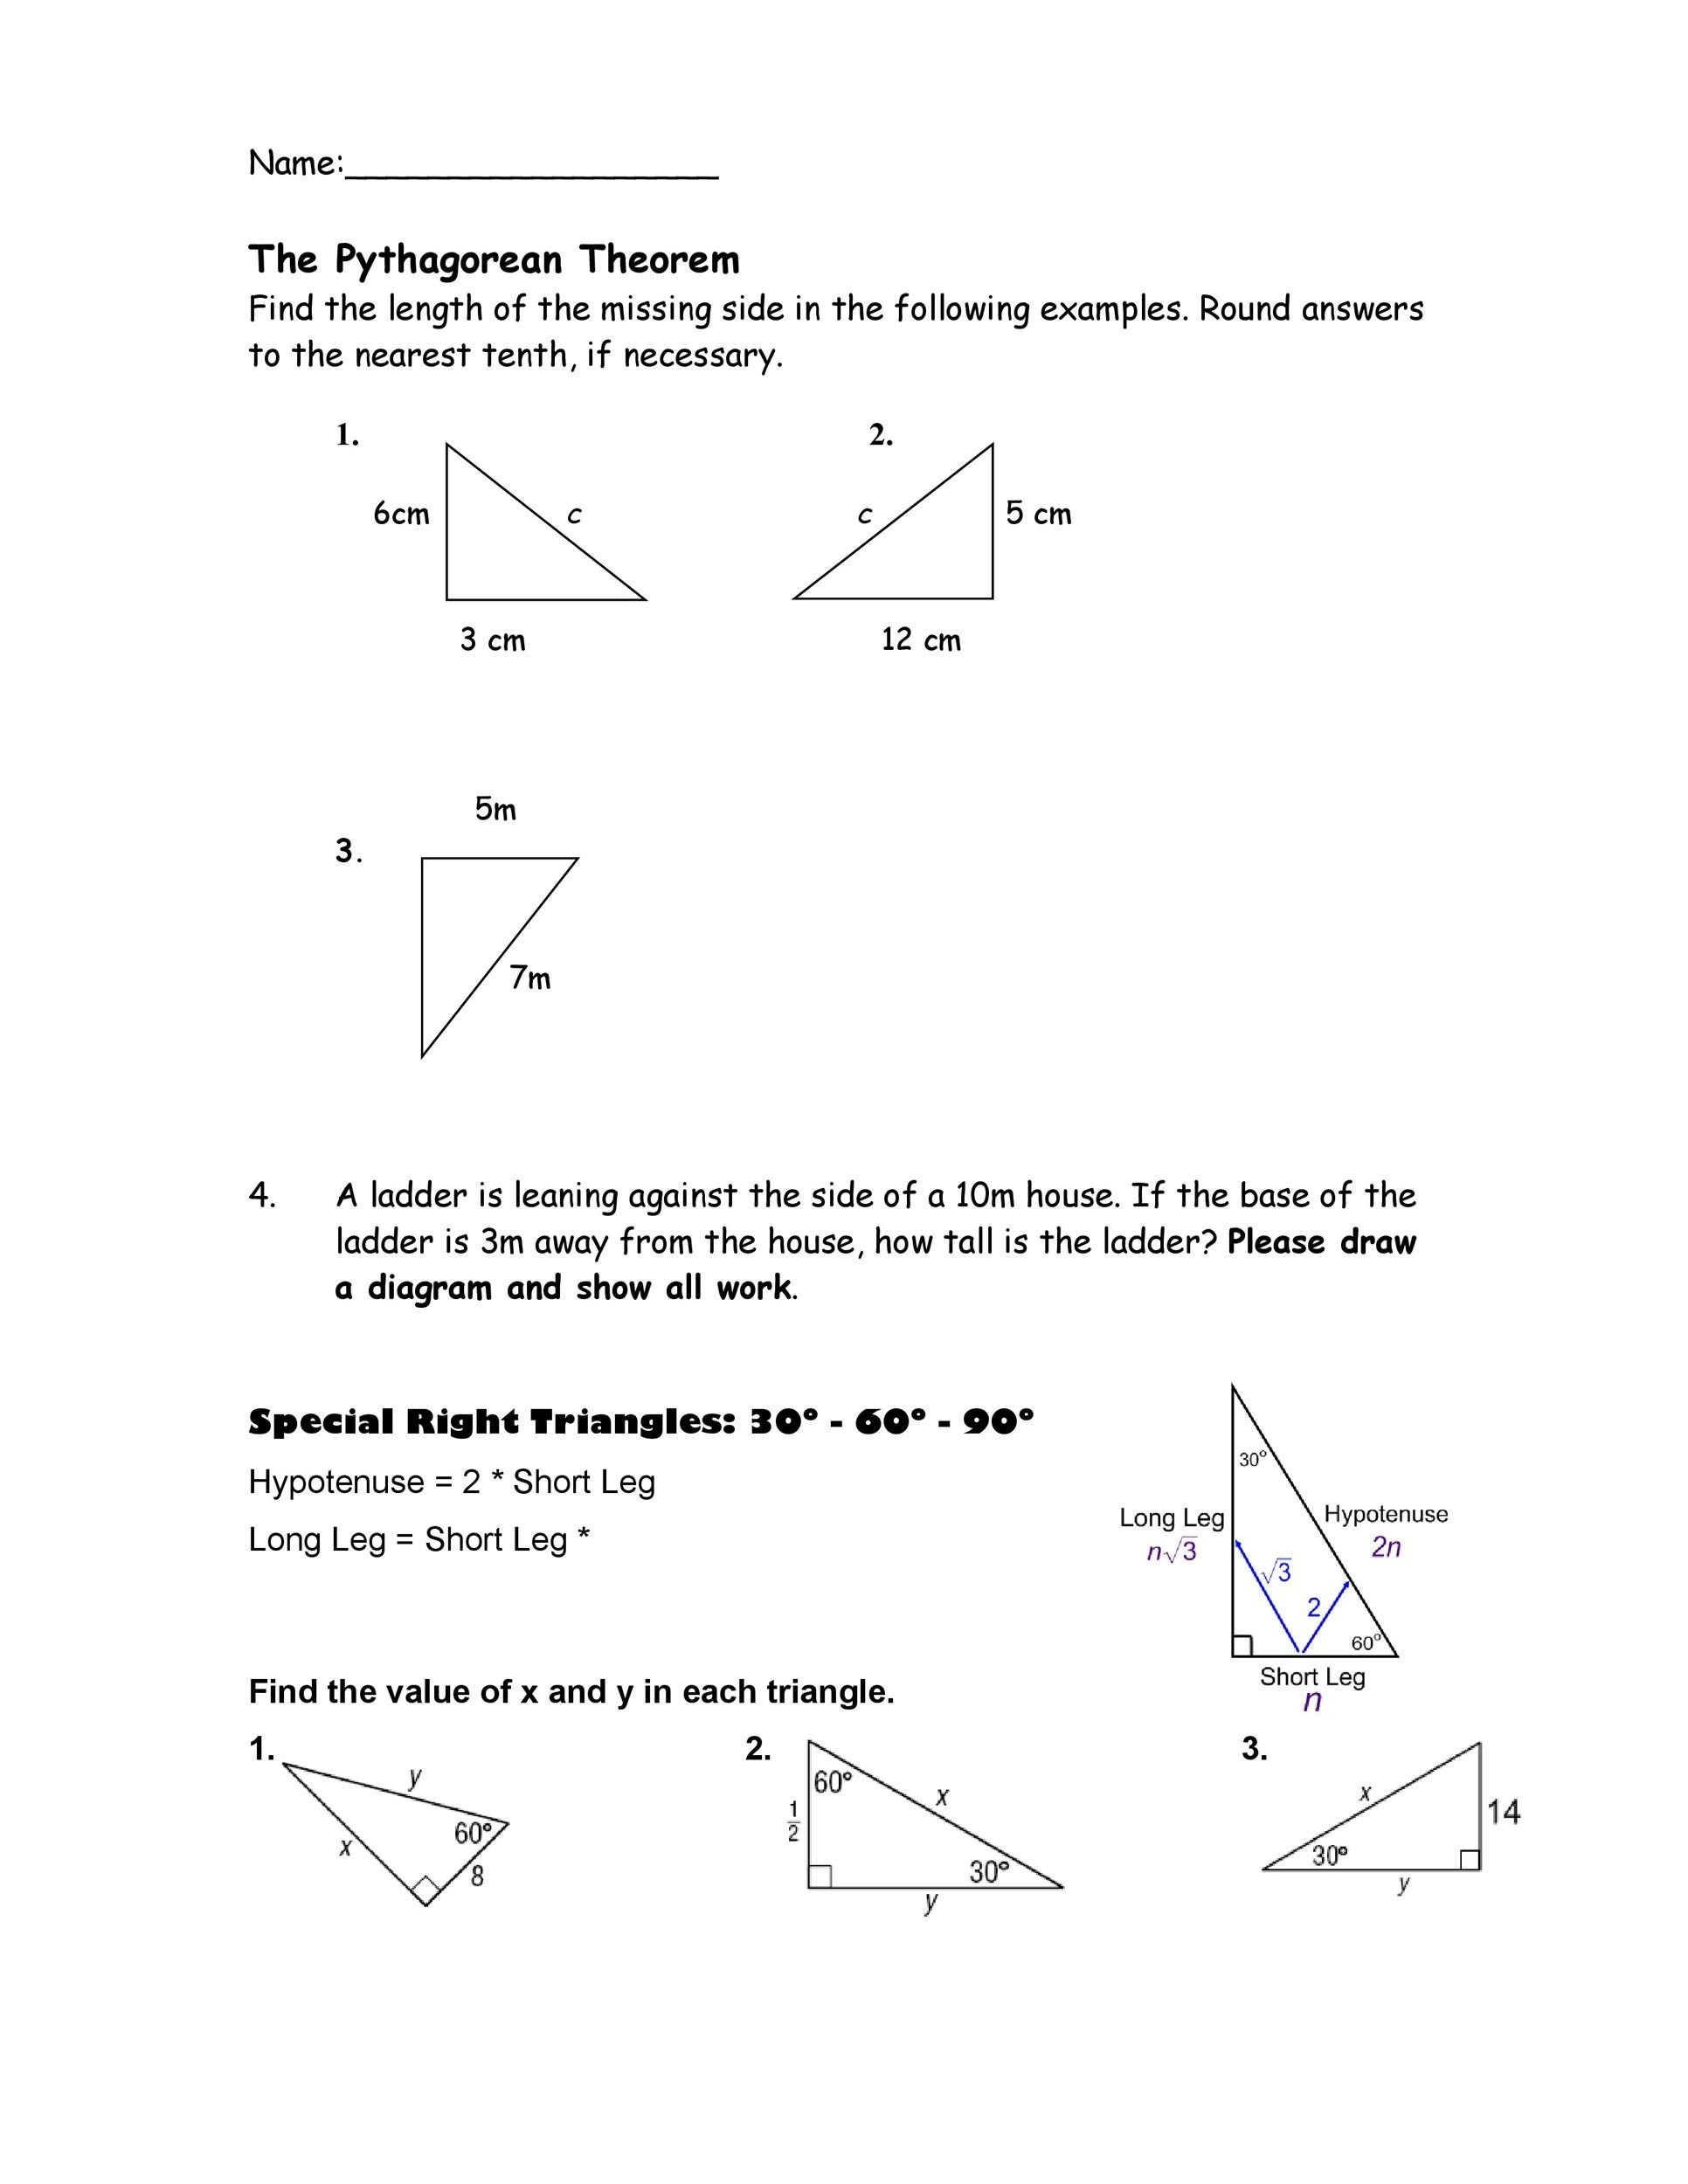 Free pythagorean theorem 27